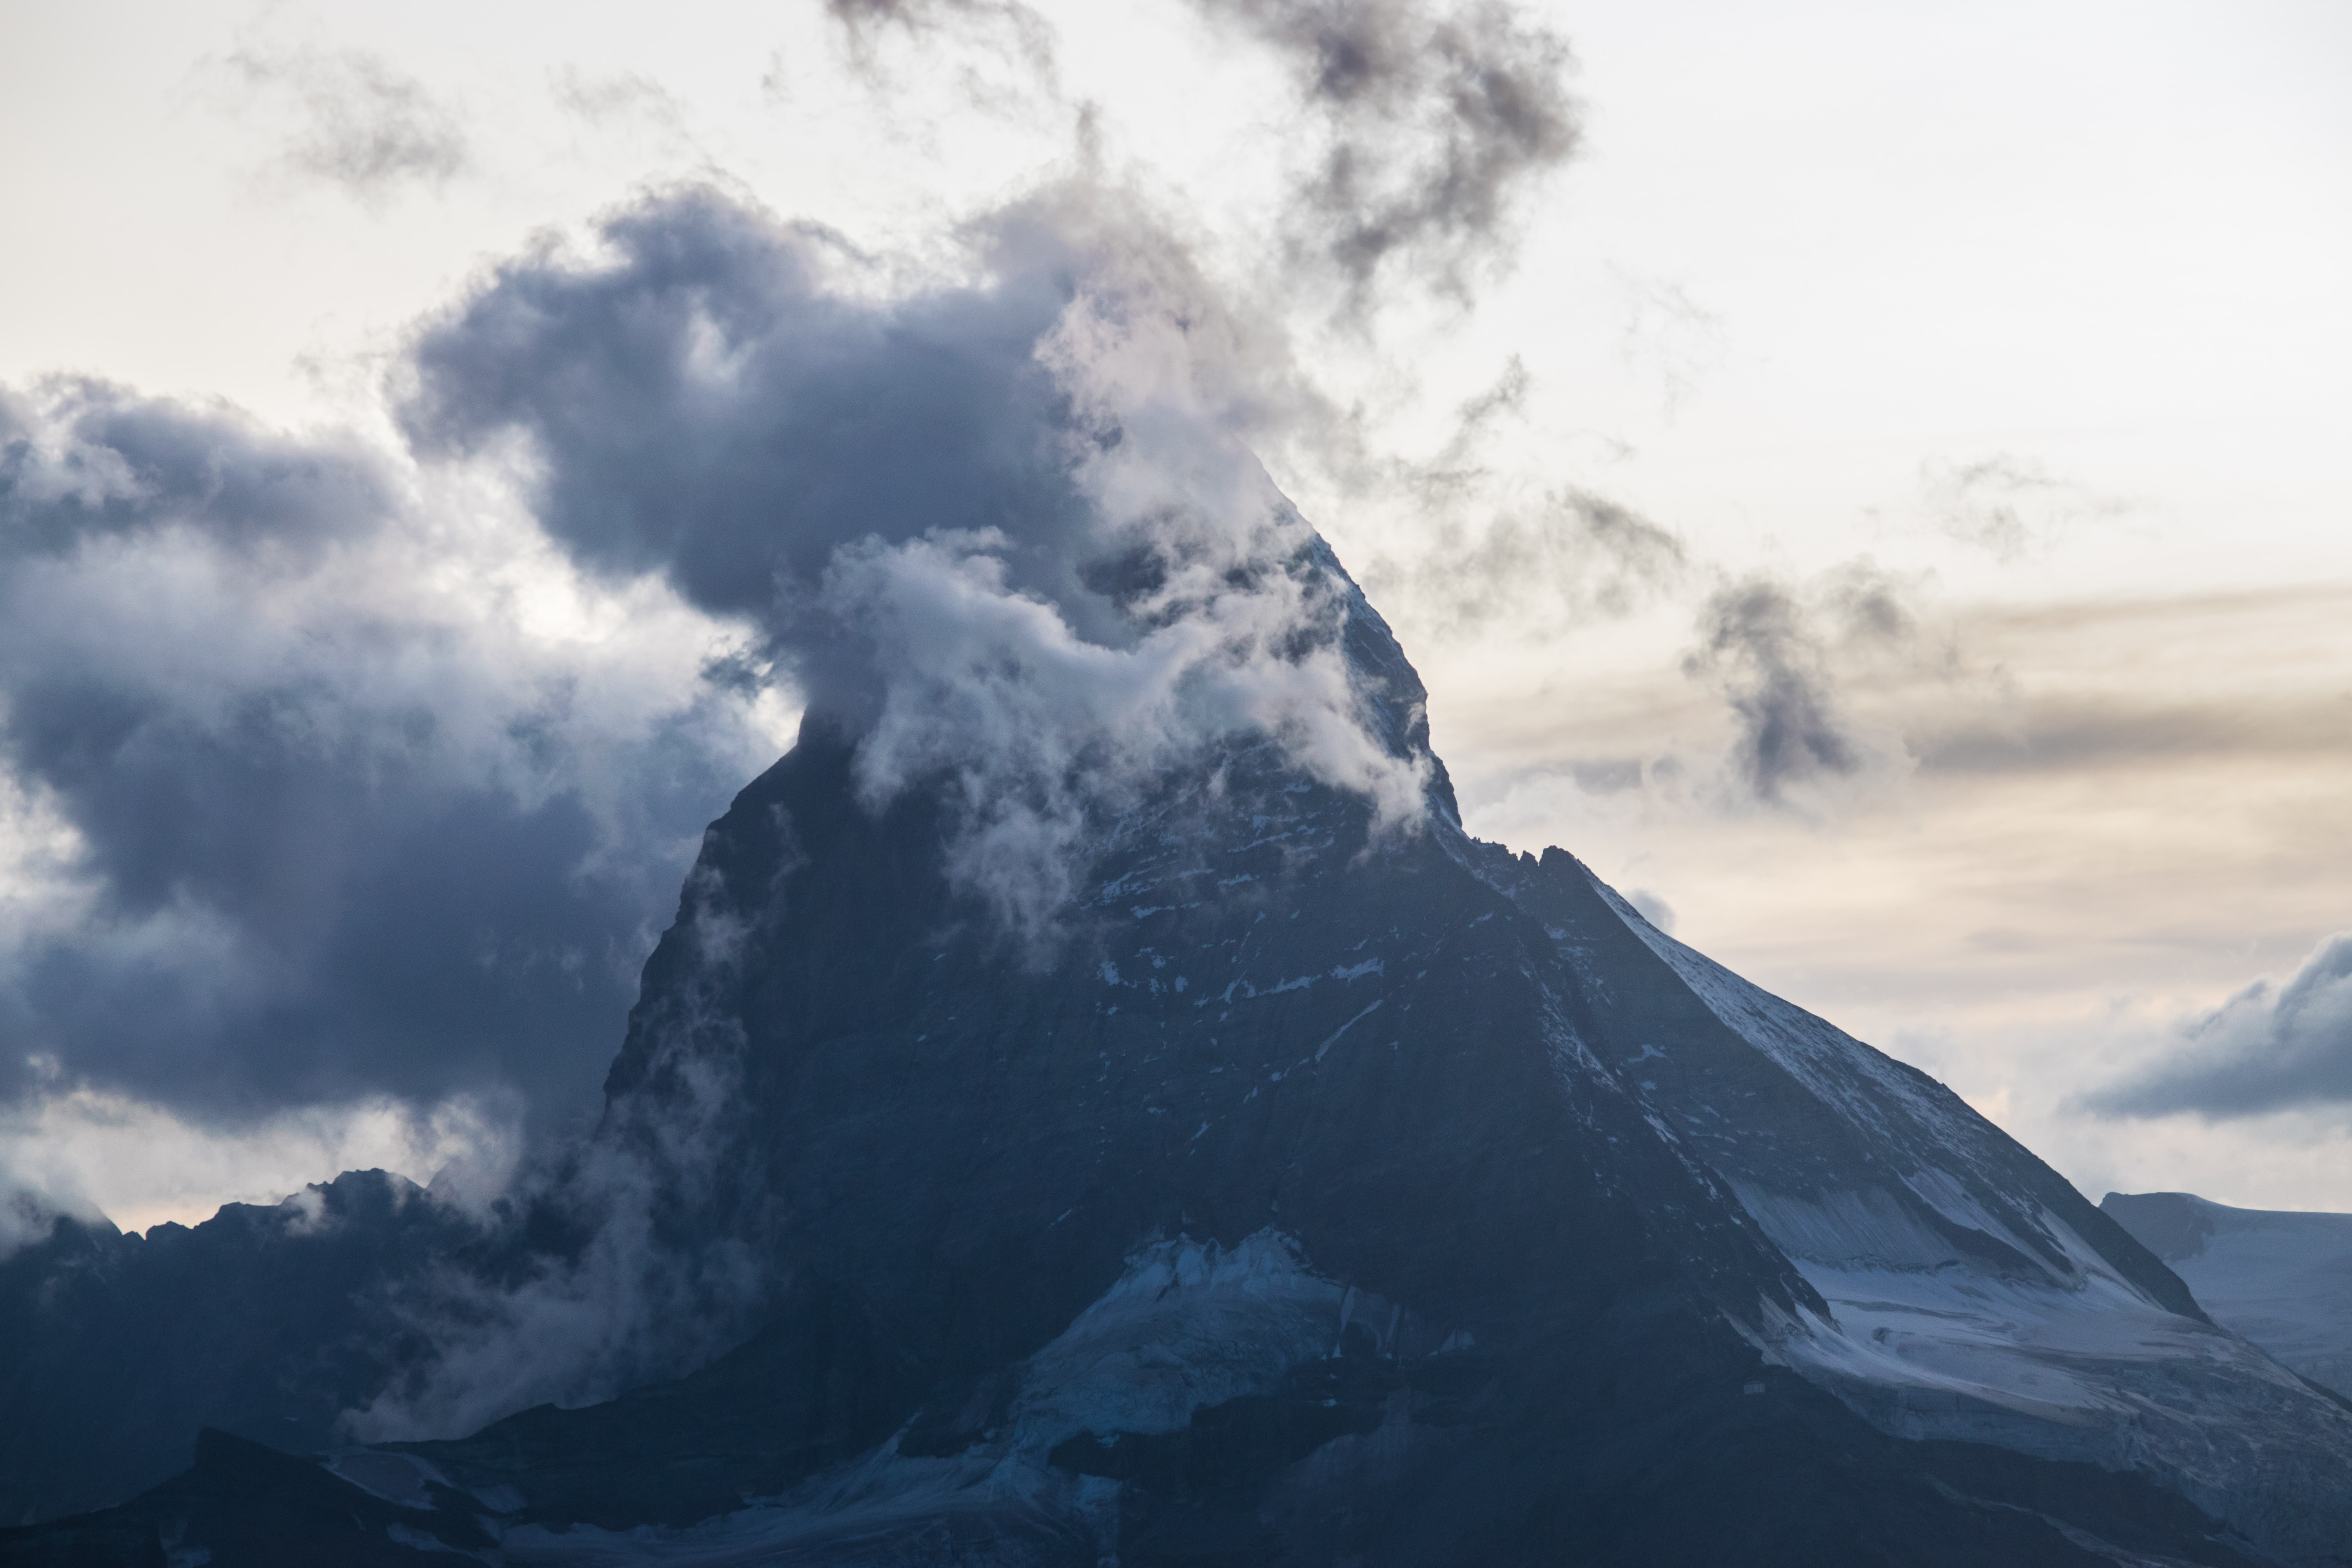 mountain near clouds during daytime